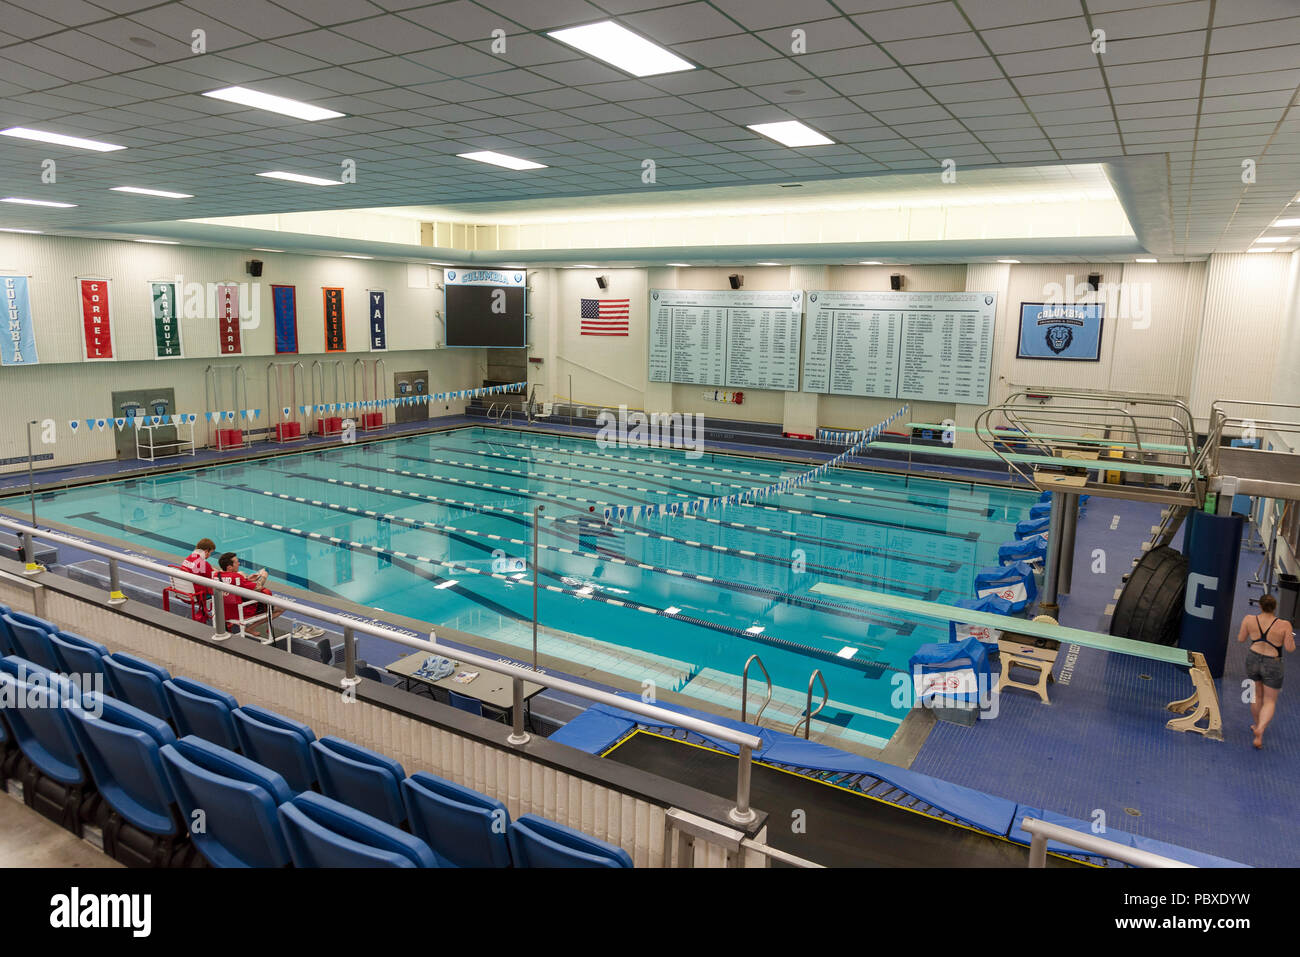 Uris stock photos uris stock images alamy for University of york swimming pool